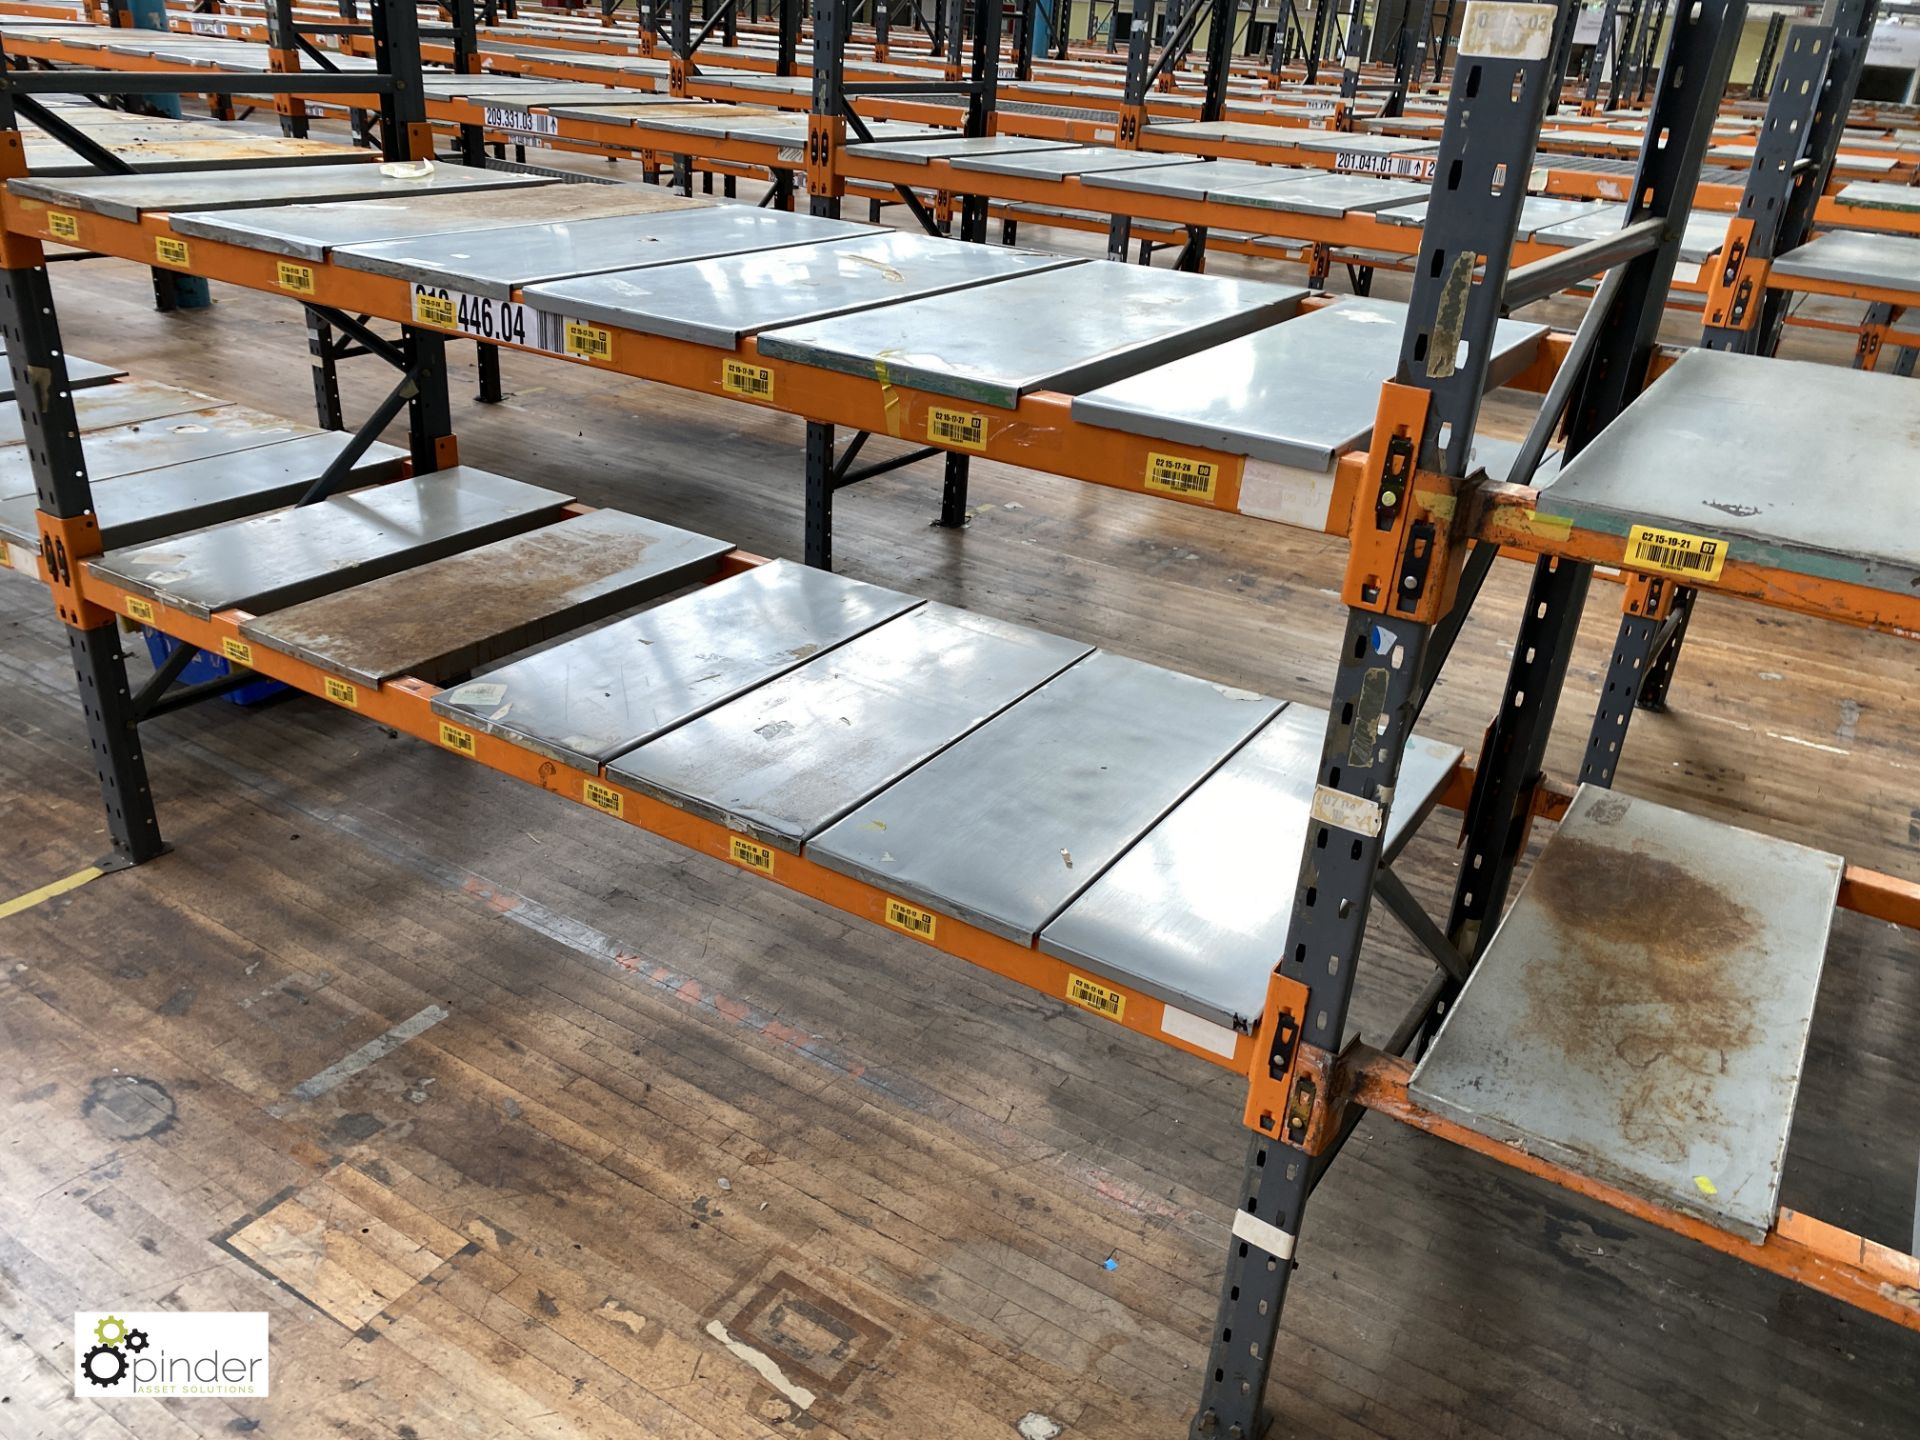 10 bays Dexion Speedlock boltless Racking comprising 11 uprights 1835mm x 910mm, 40 beams 2450mm, - Image 3 of 4